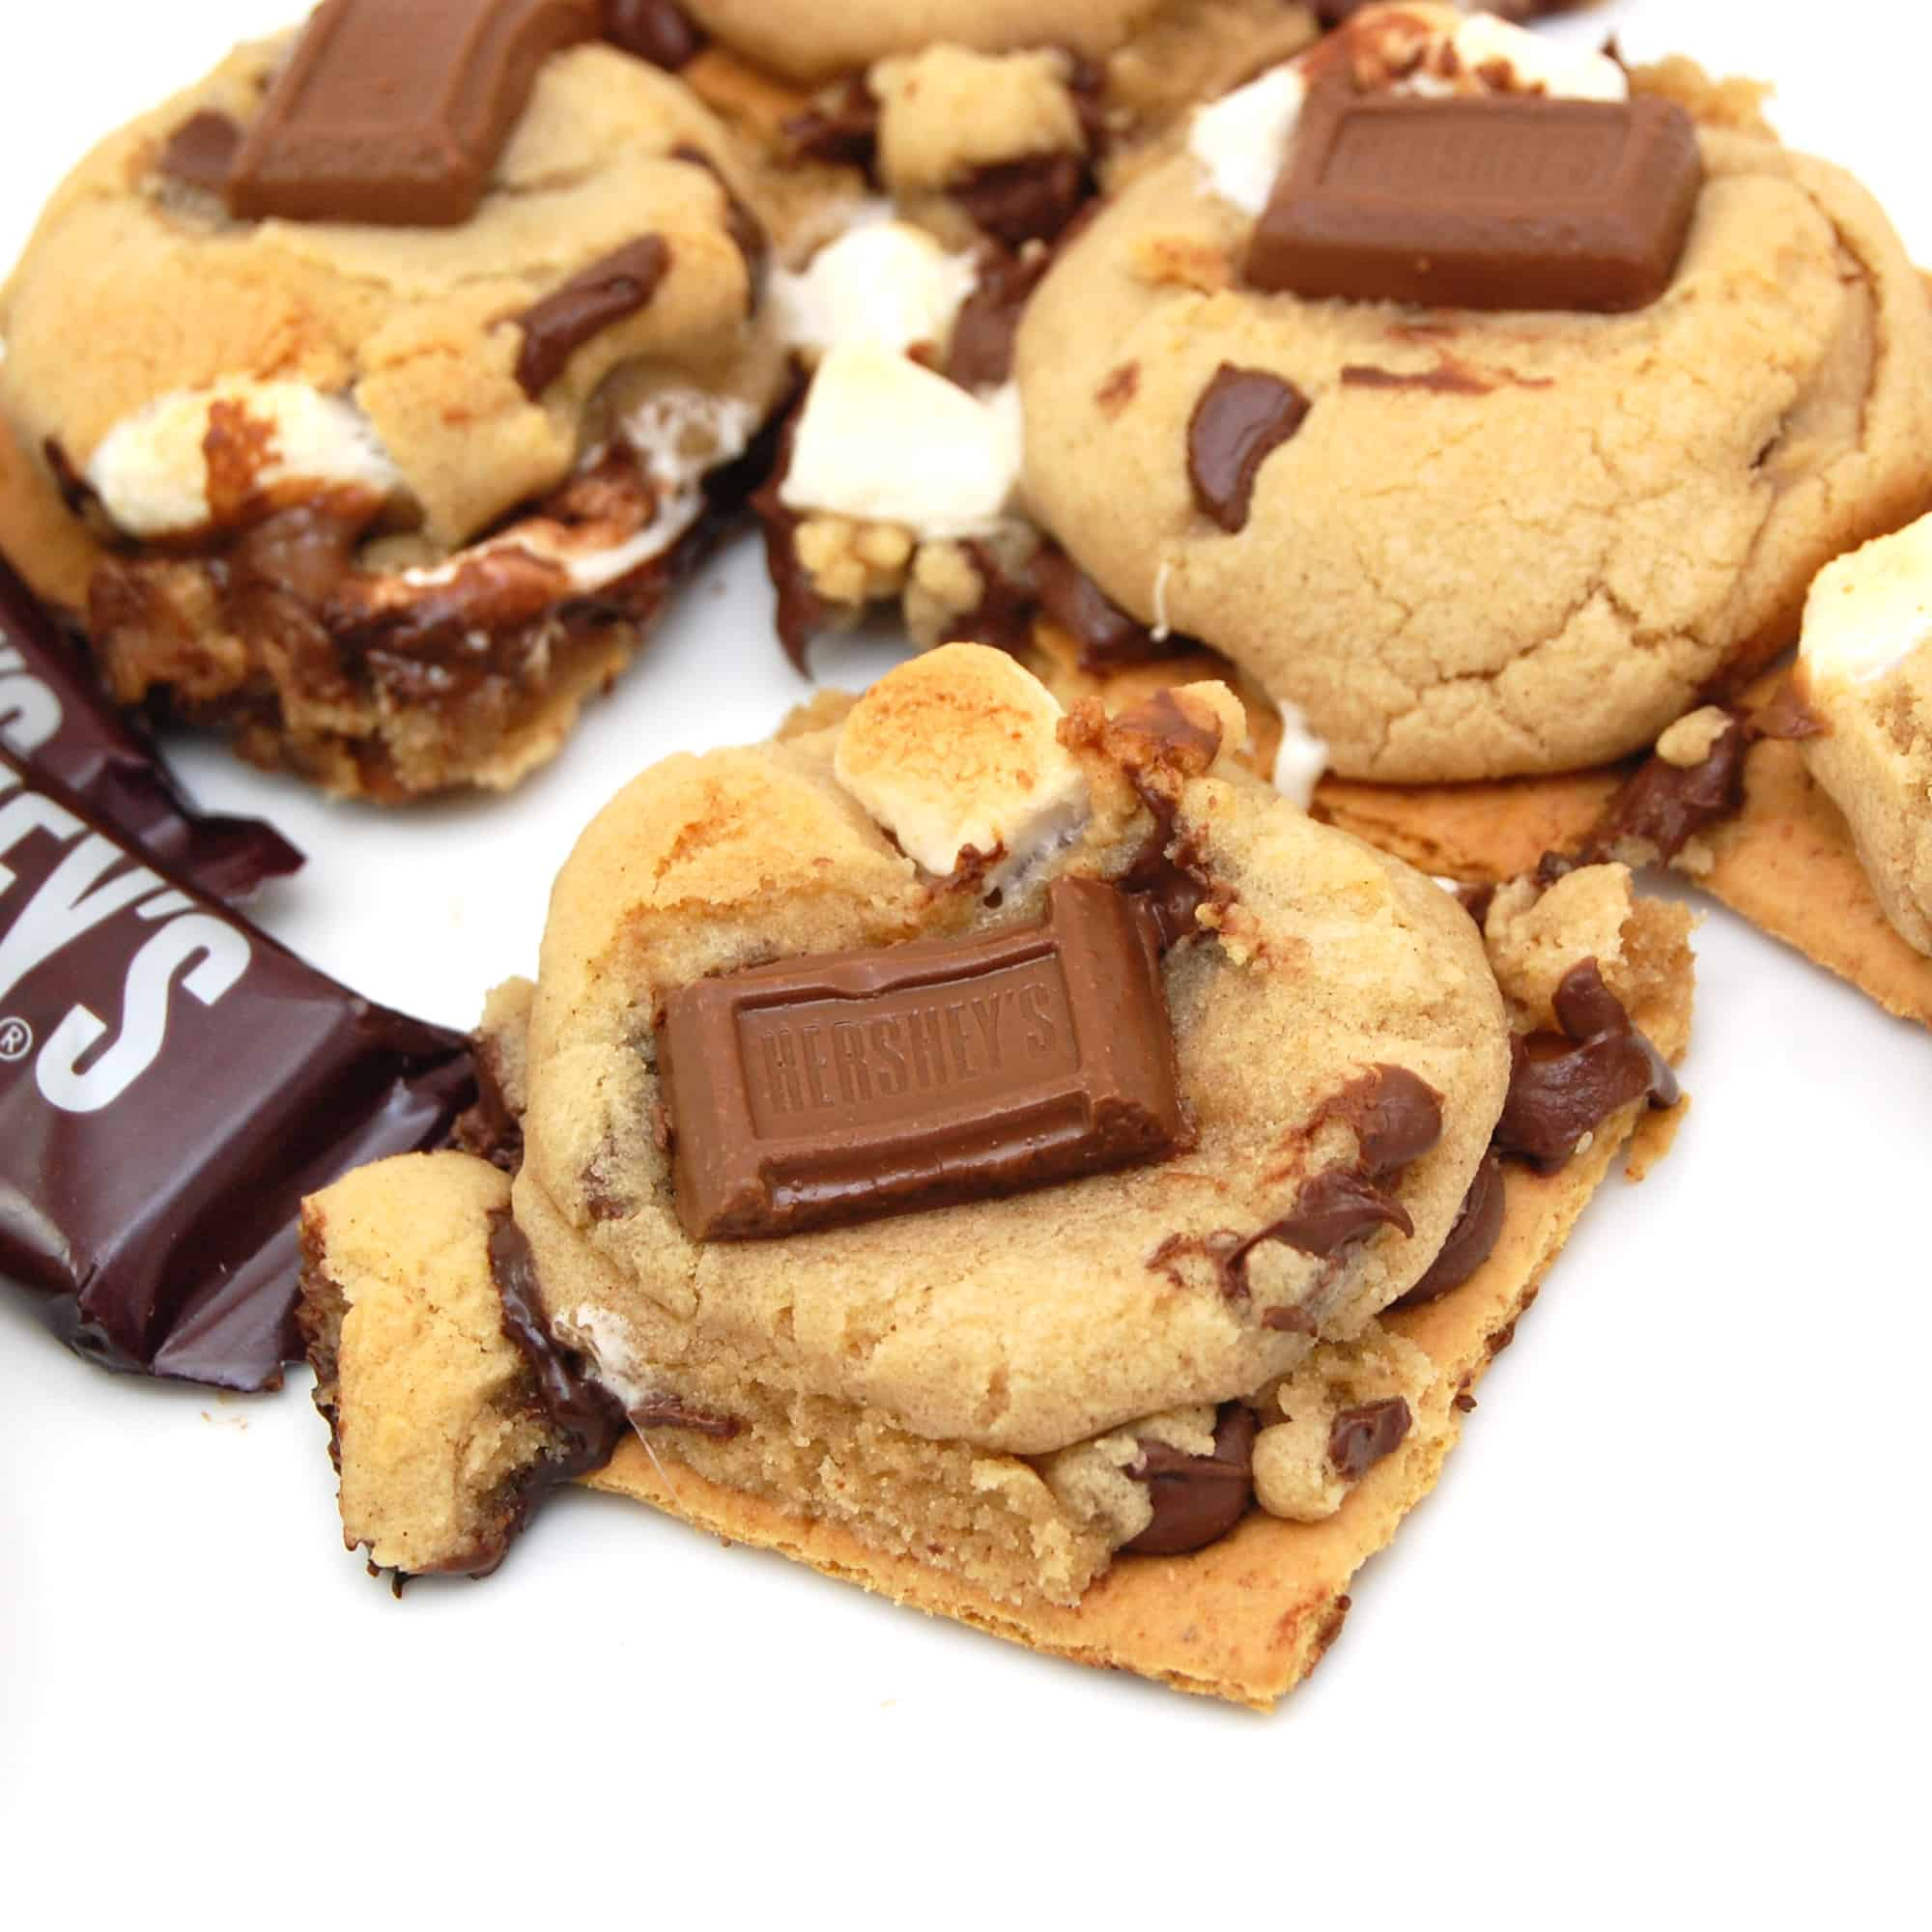 freshly baked s'mores cookies